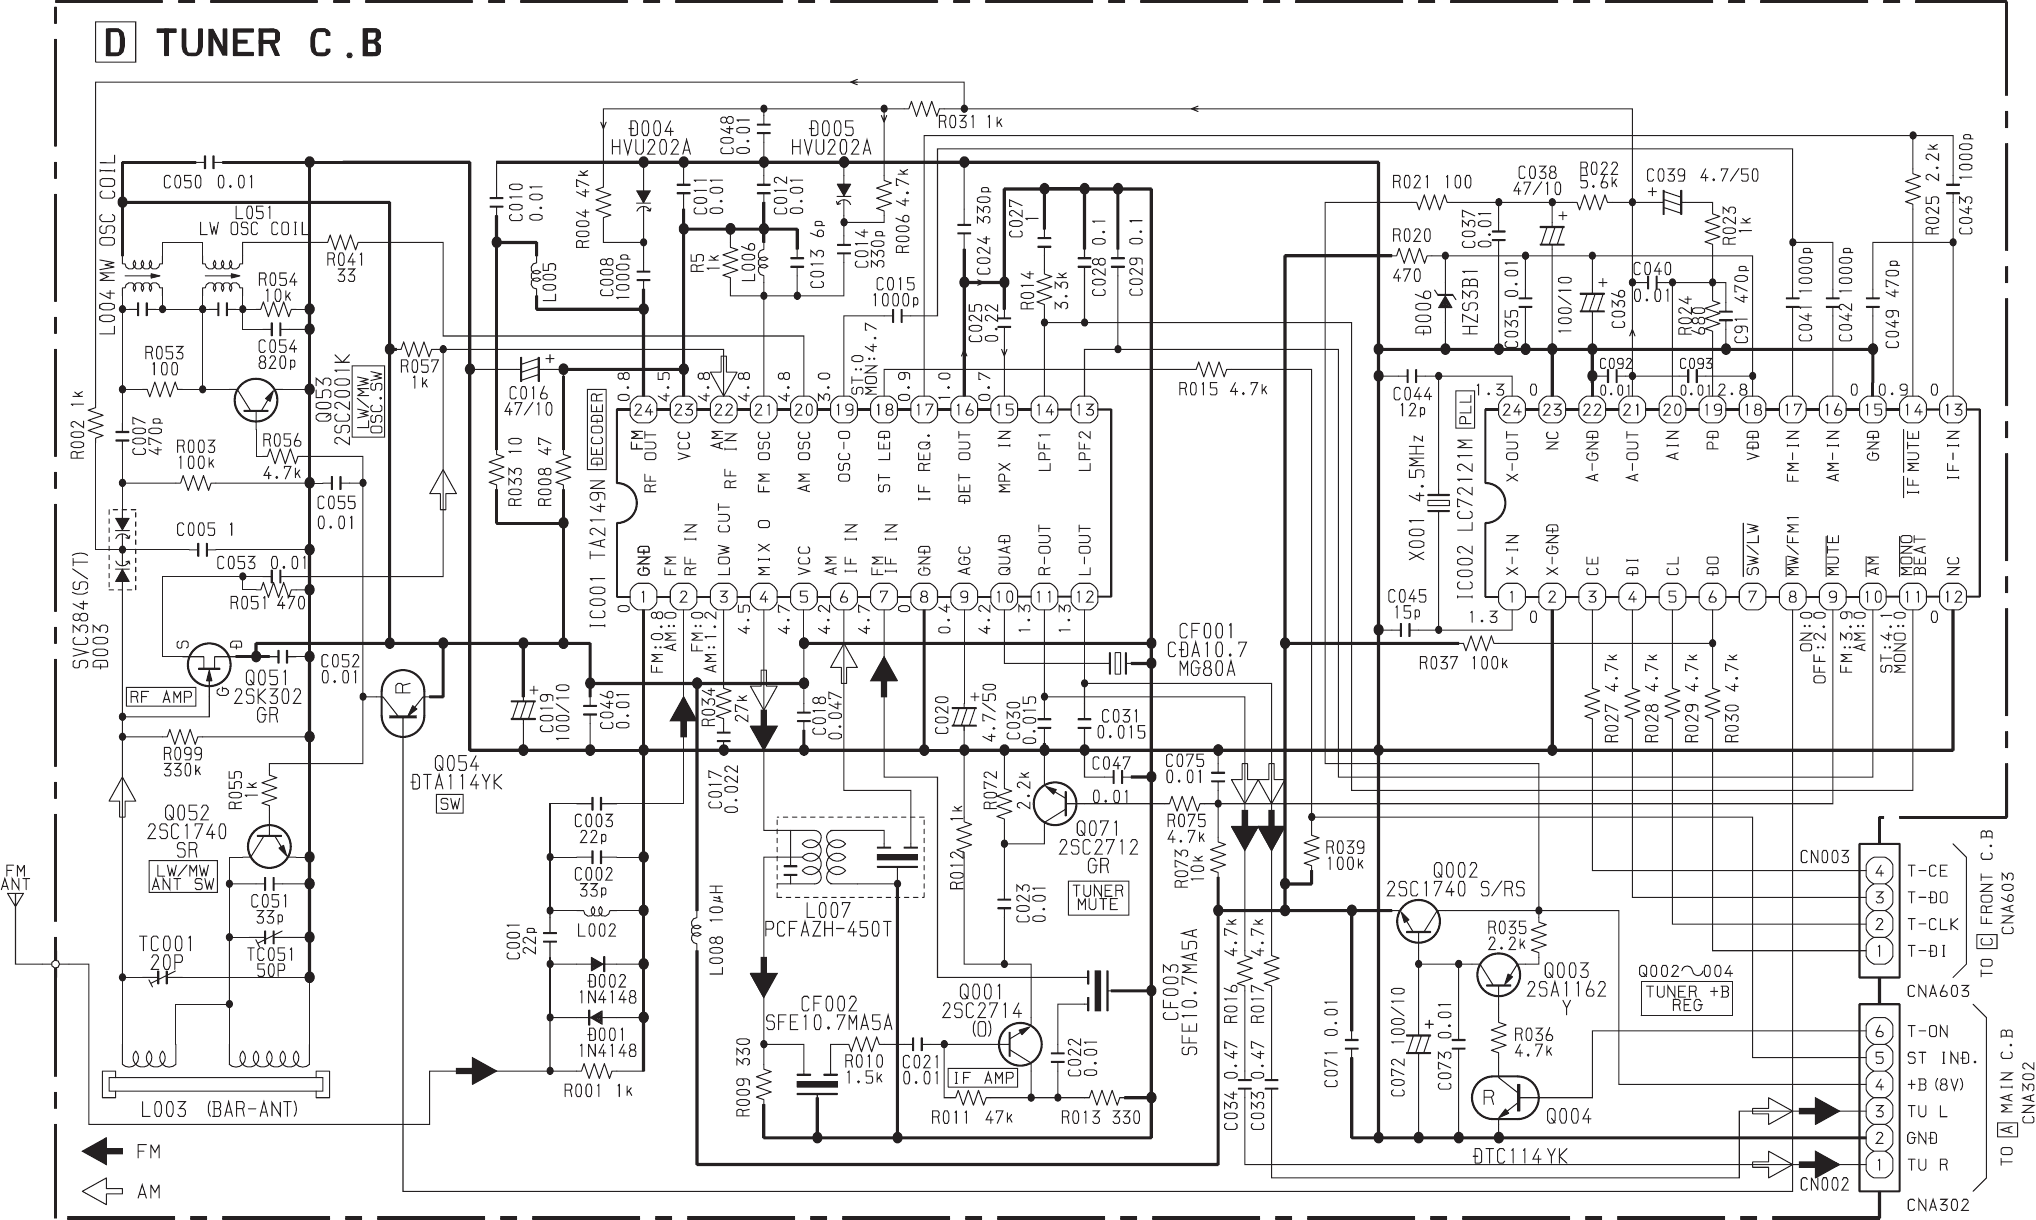 444902c2 cfa5 4d0a 84d7 3221f688977f bg11 dual xdvd700 wiring plug diagram chevy 305 firing order diagram  at creativeand.co